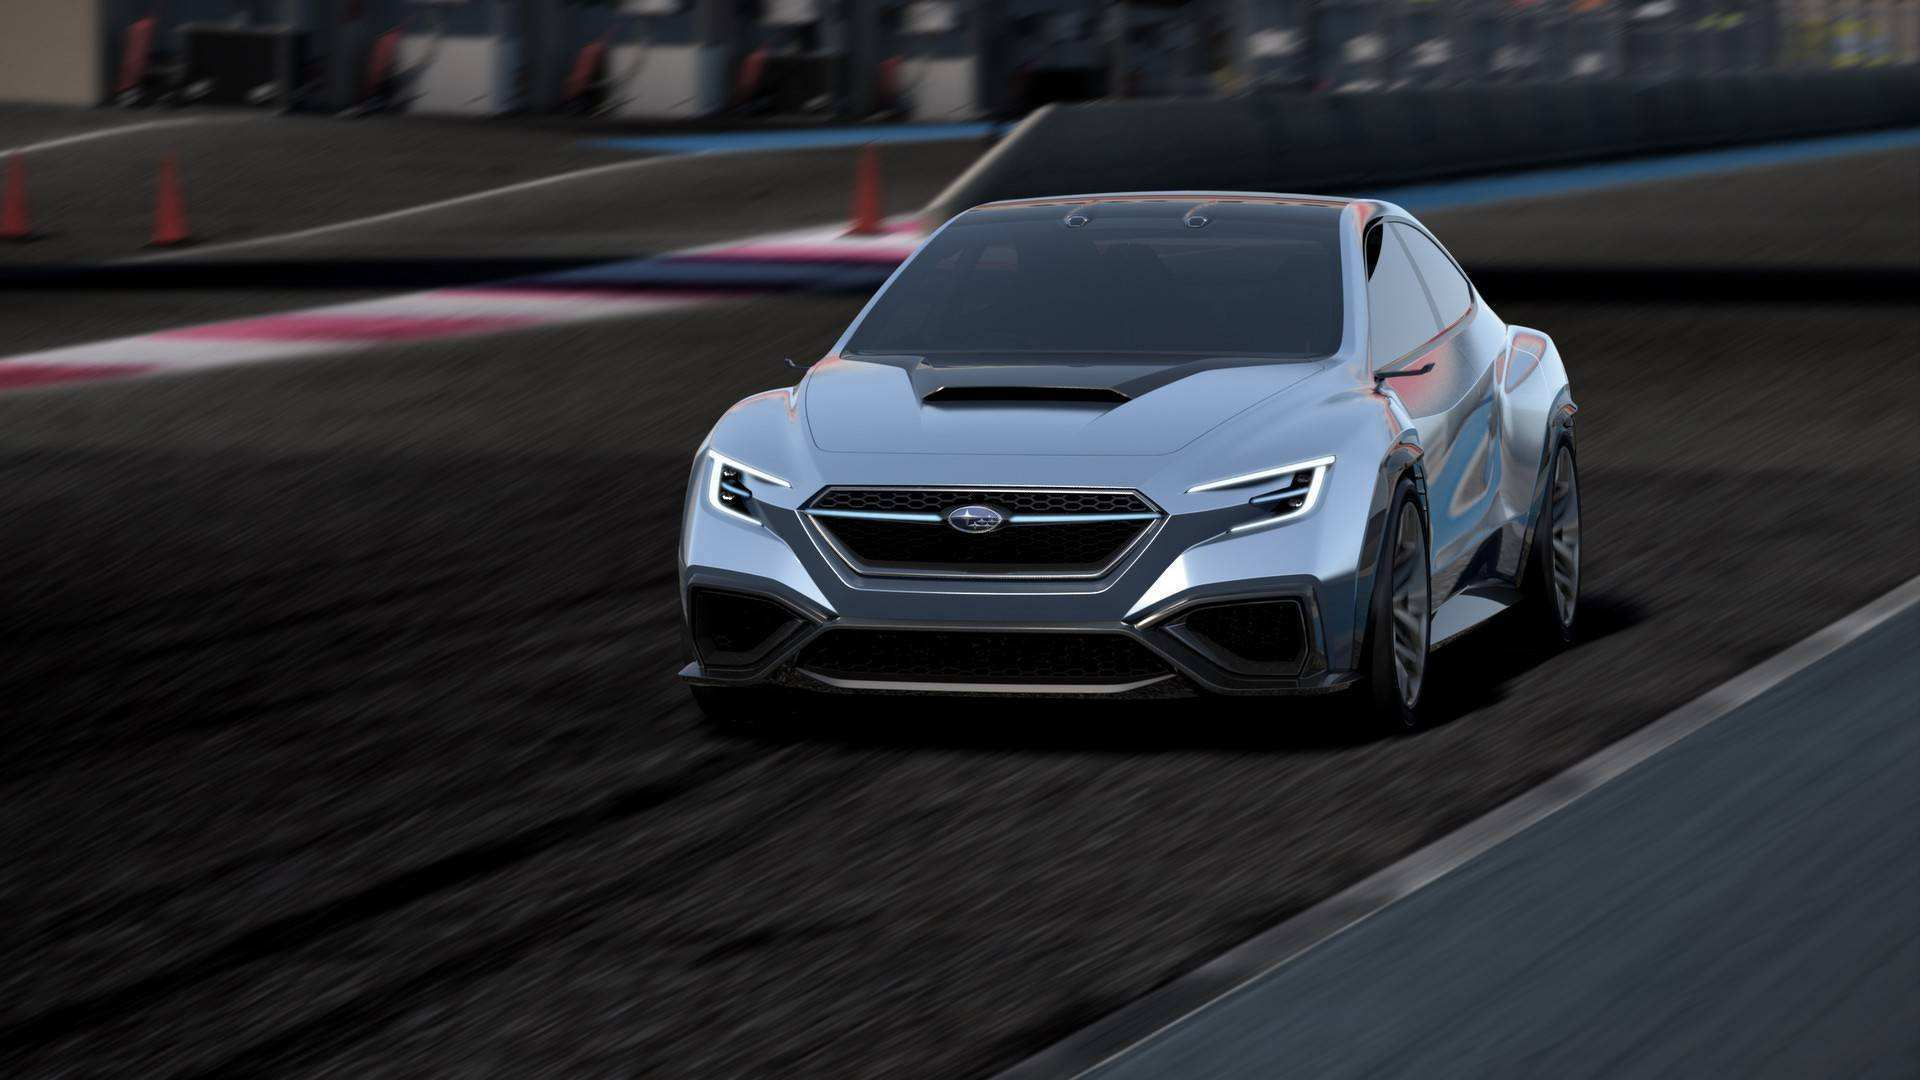 56 The 2020 Subaru Sti Review for 2020 Subaru Sti